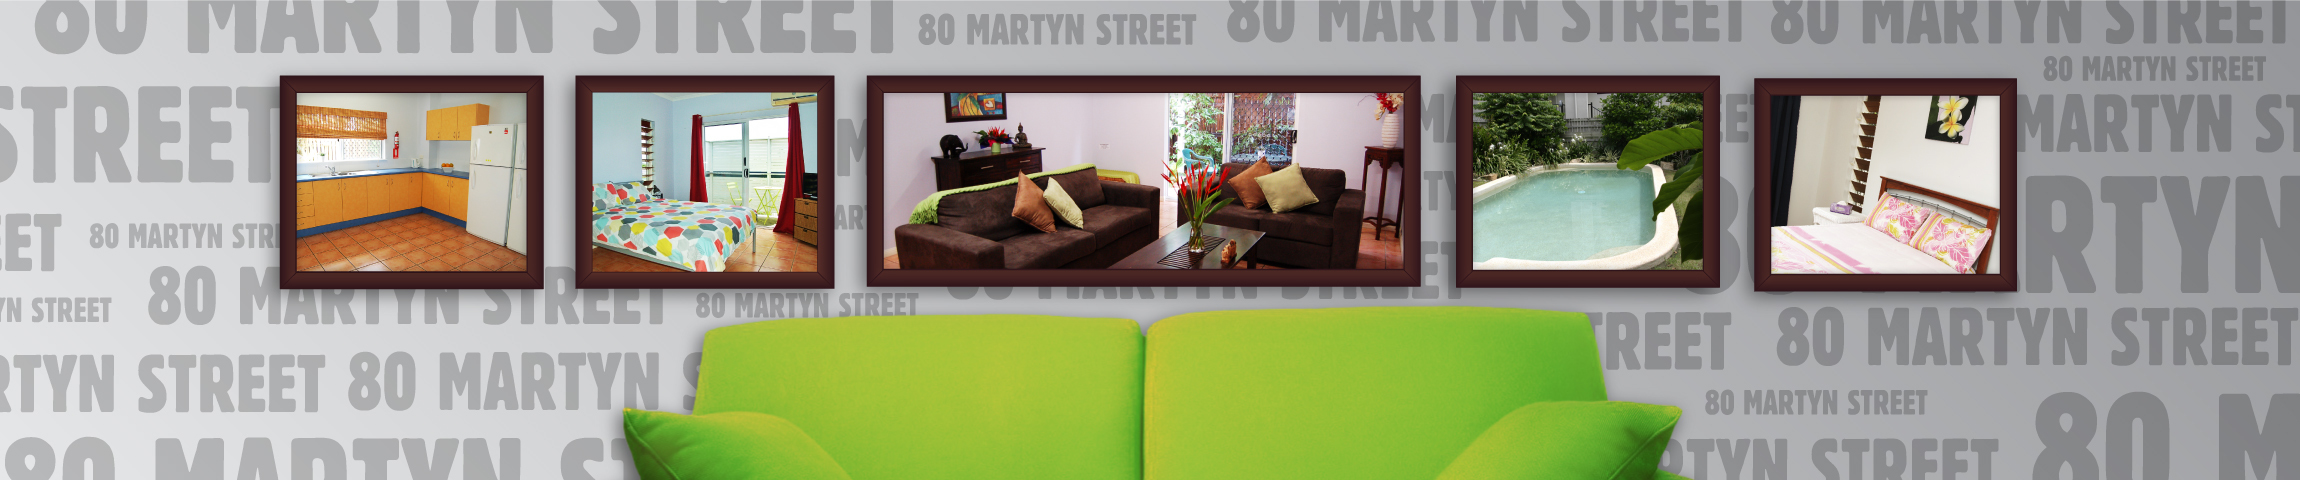 The Martyn Property